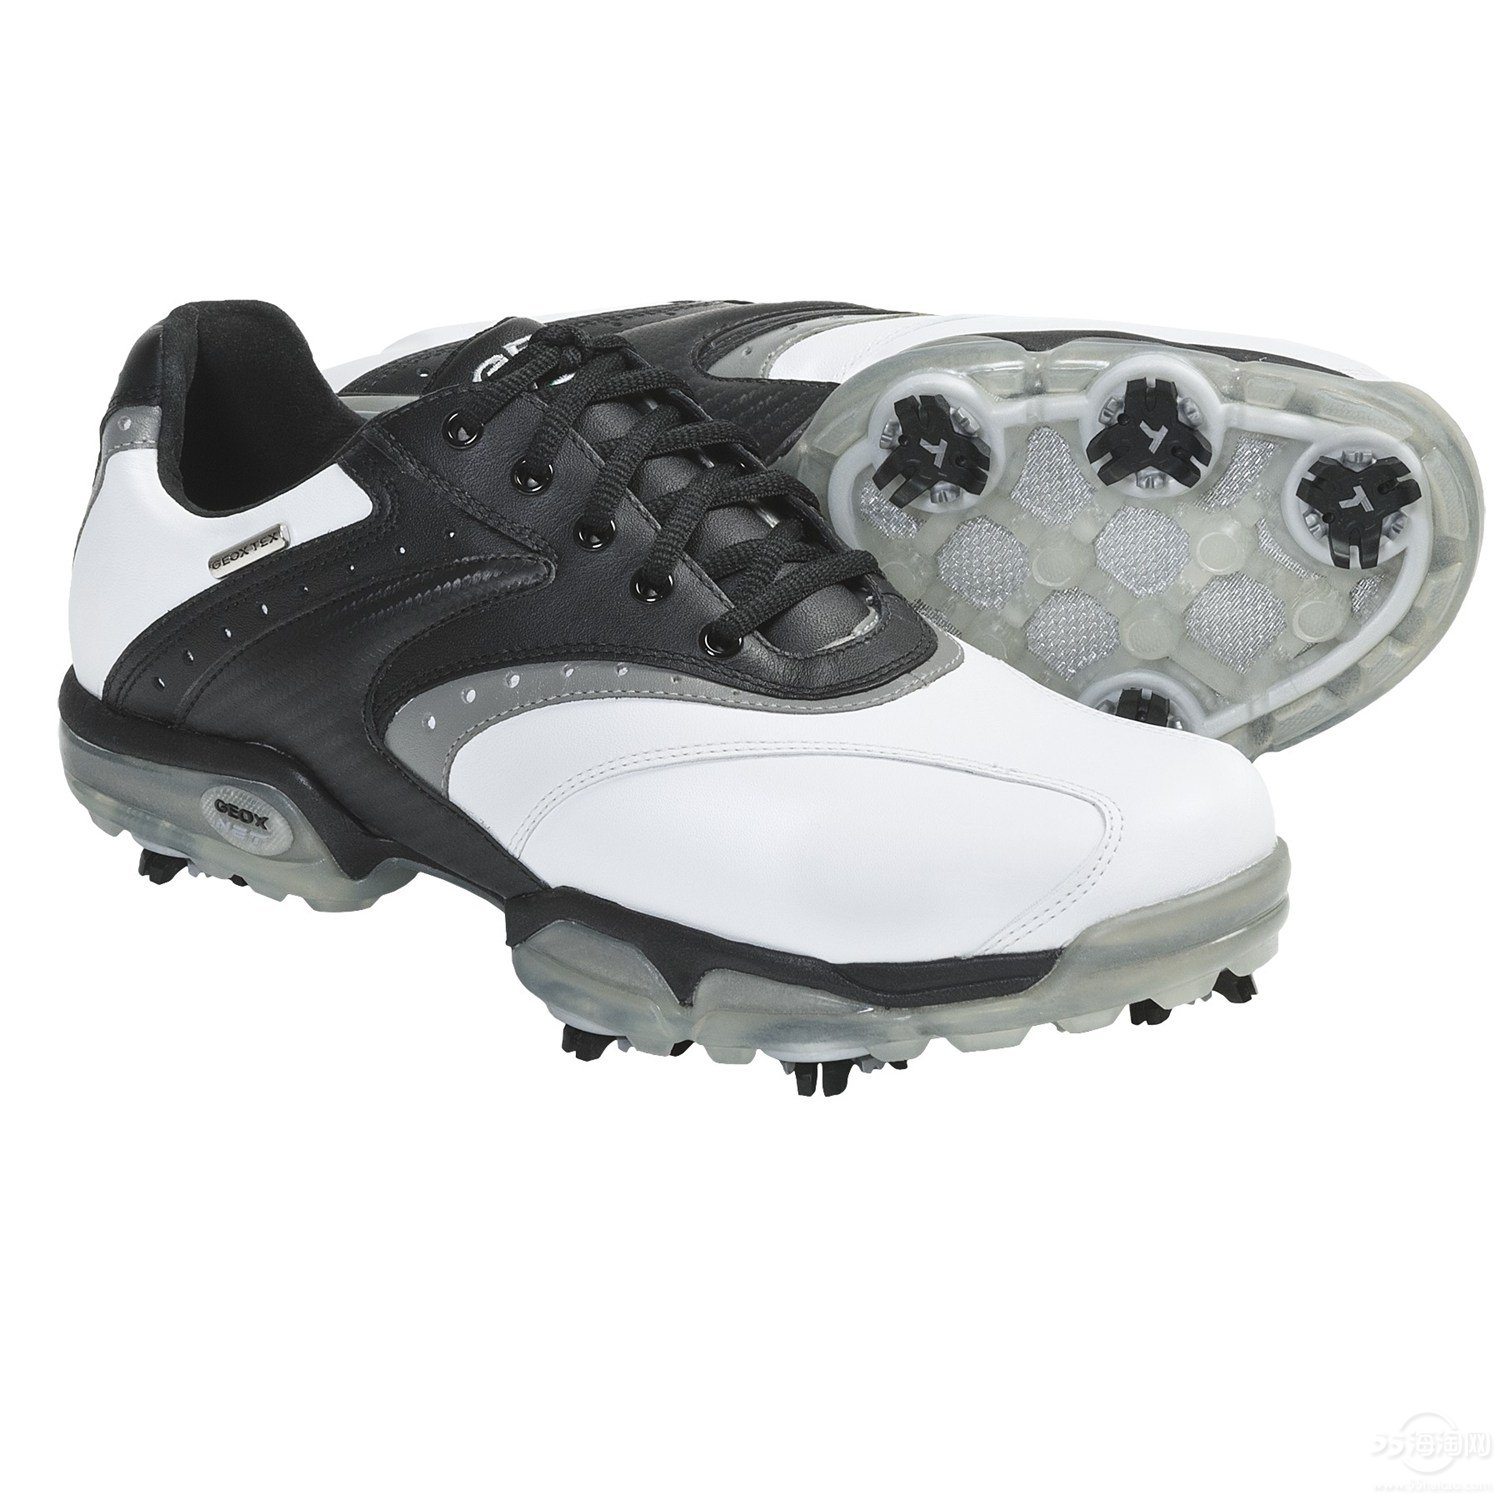 Geox Protech Saddle Golf Shoes - Waterproof (For Men).jpg